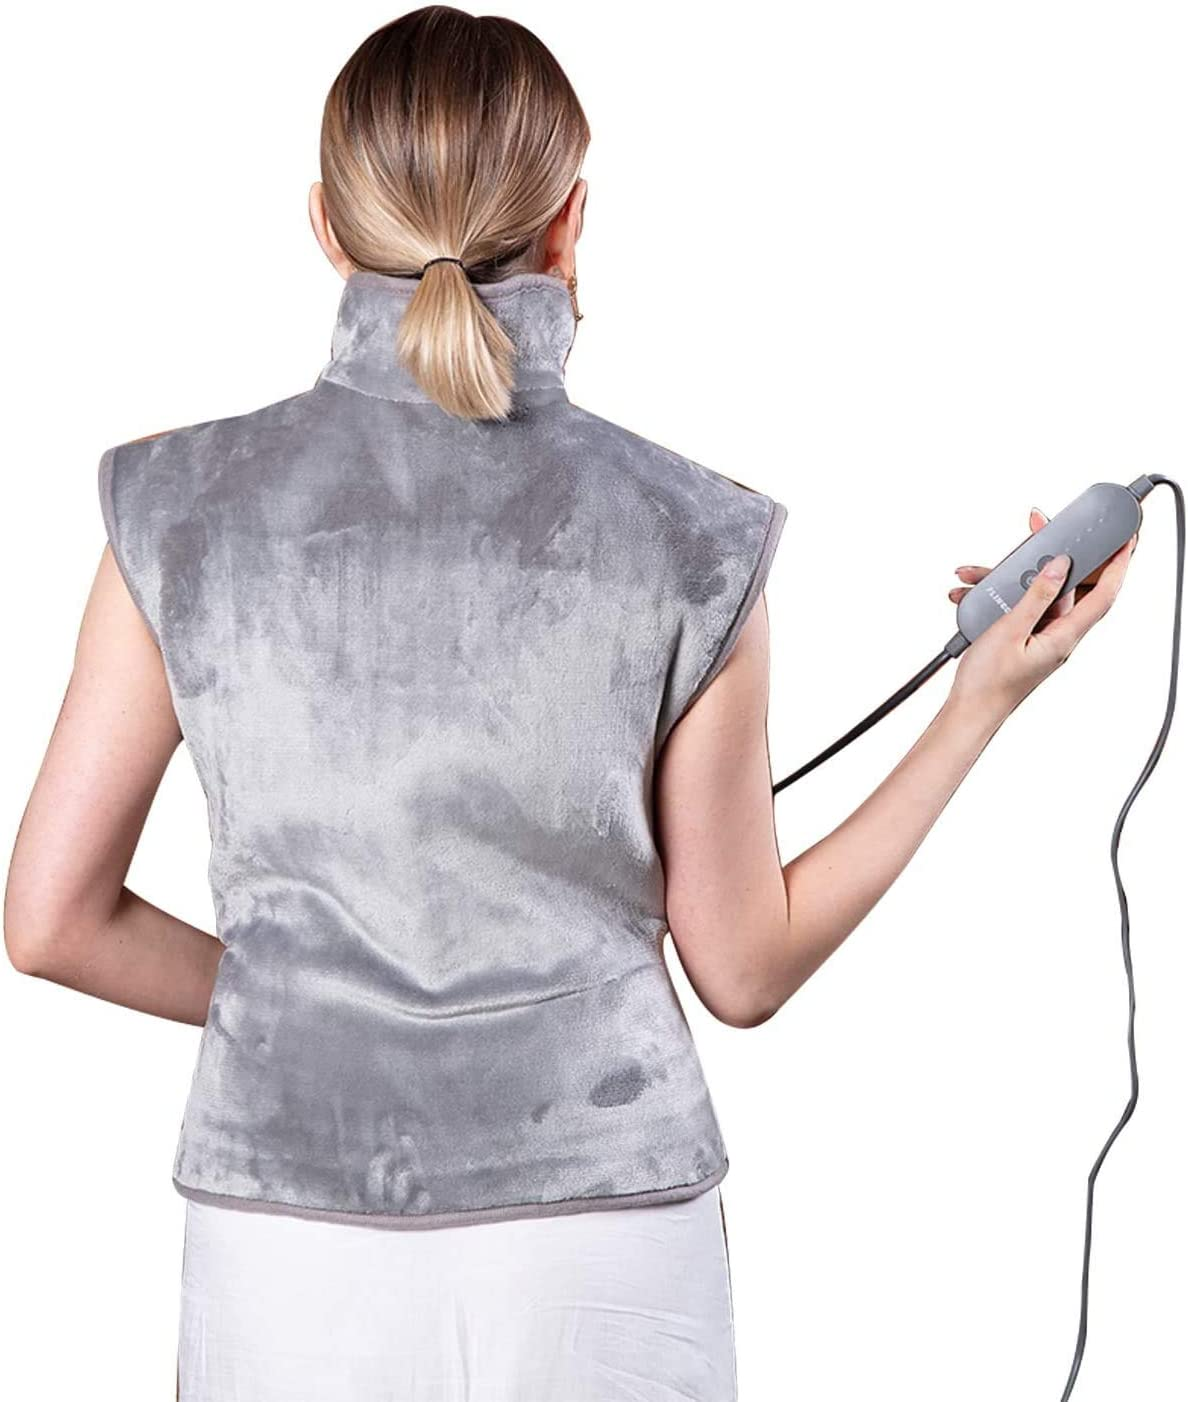 FLINCOUS Heating Pad for Back Pain Relief, 24x34 inch Large Heated Pad for Neck and Shoulders, Heating Wrap with Adjustable Temperature Settings Auto Shut Off